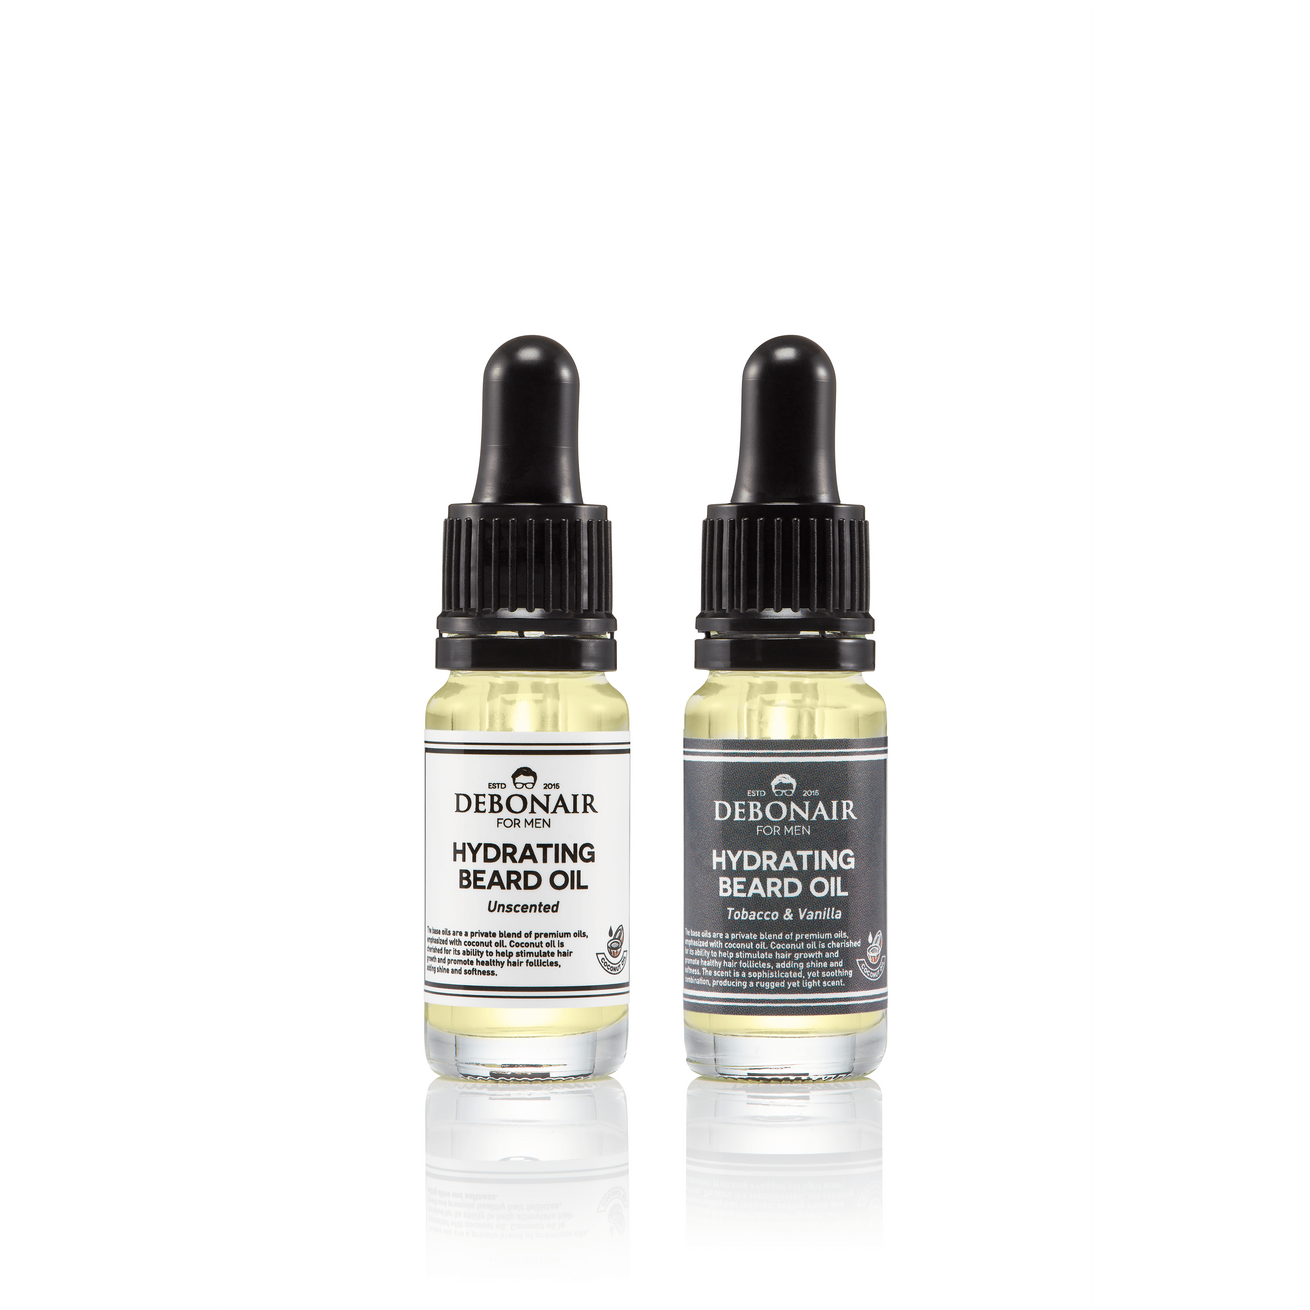 Pocket Beard Oil Duo - Debonair for Men